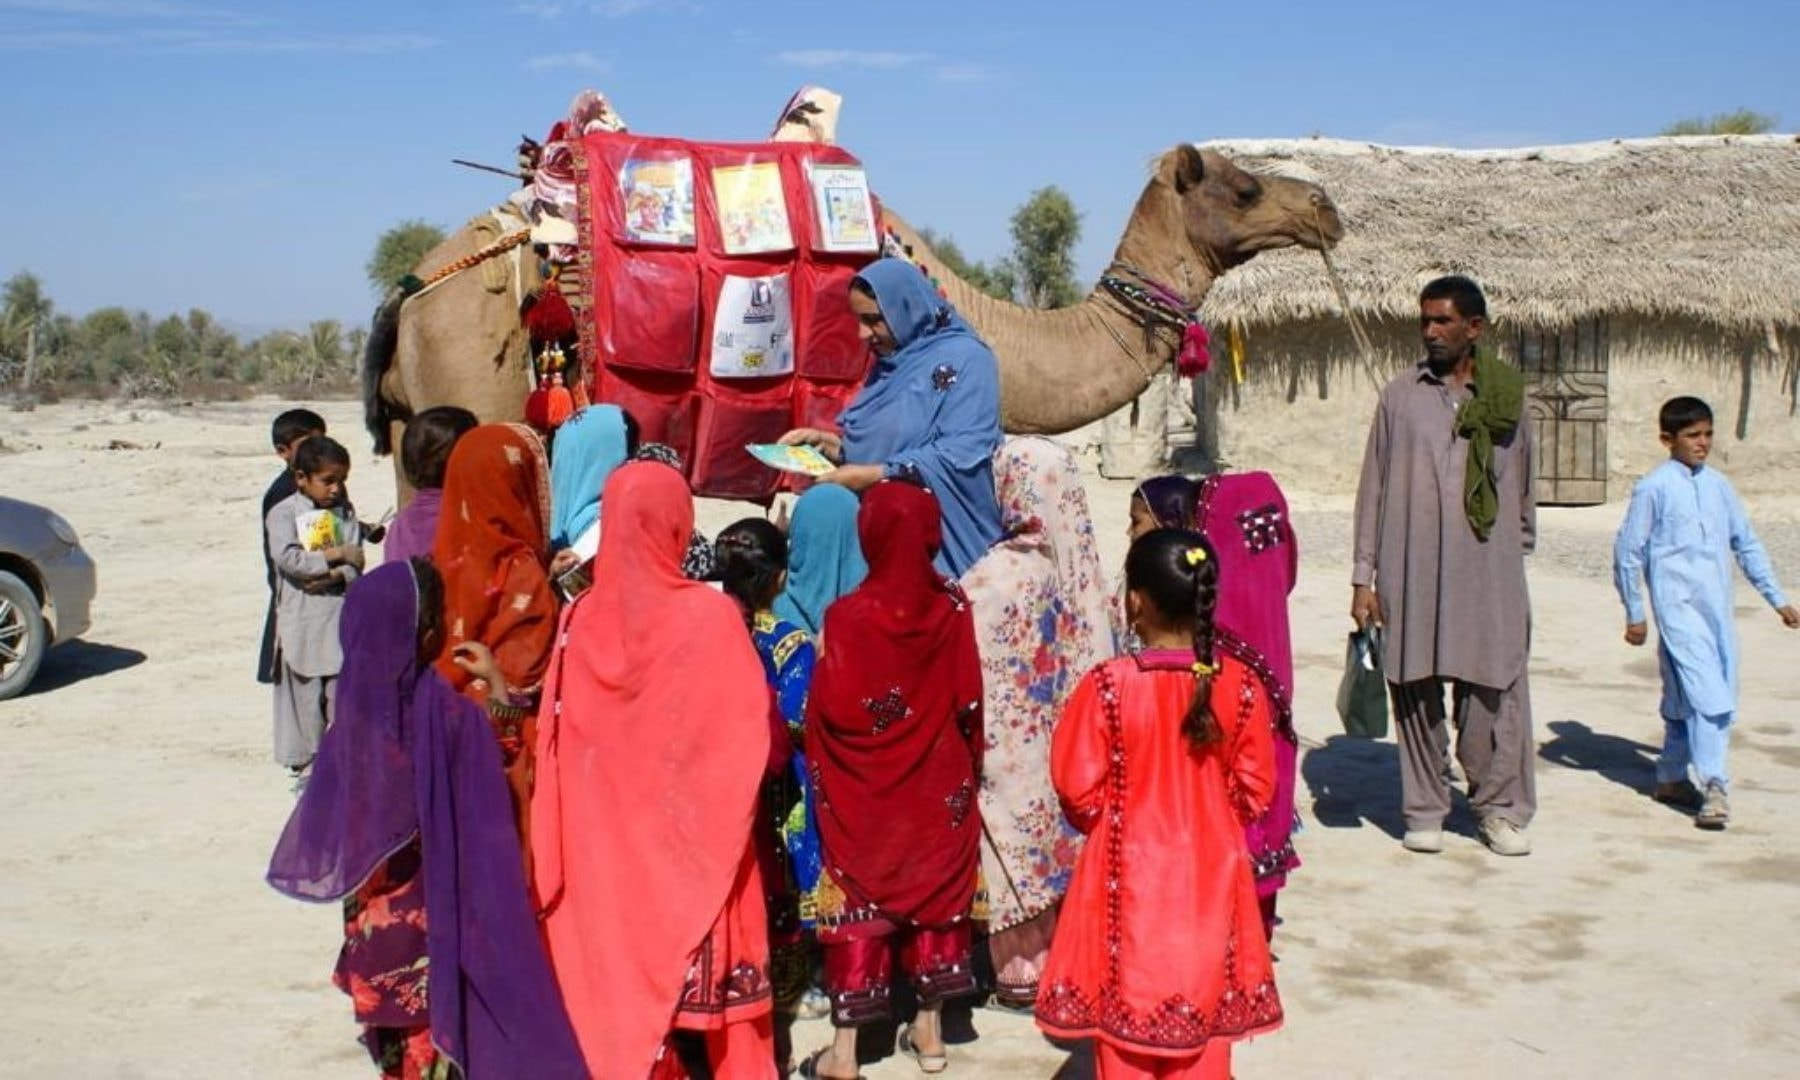 Children stand next to a camel that brought books in Mand, Balochistan, April 11. — Fuzul Bashir via Reuters